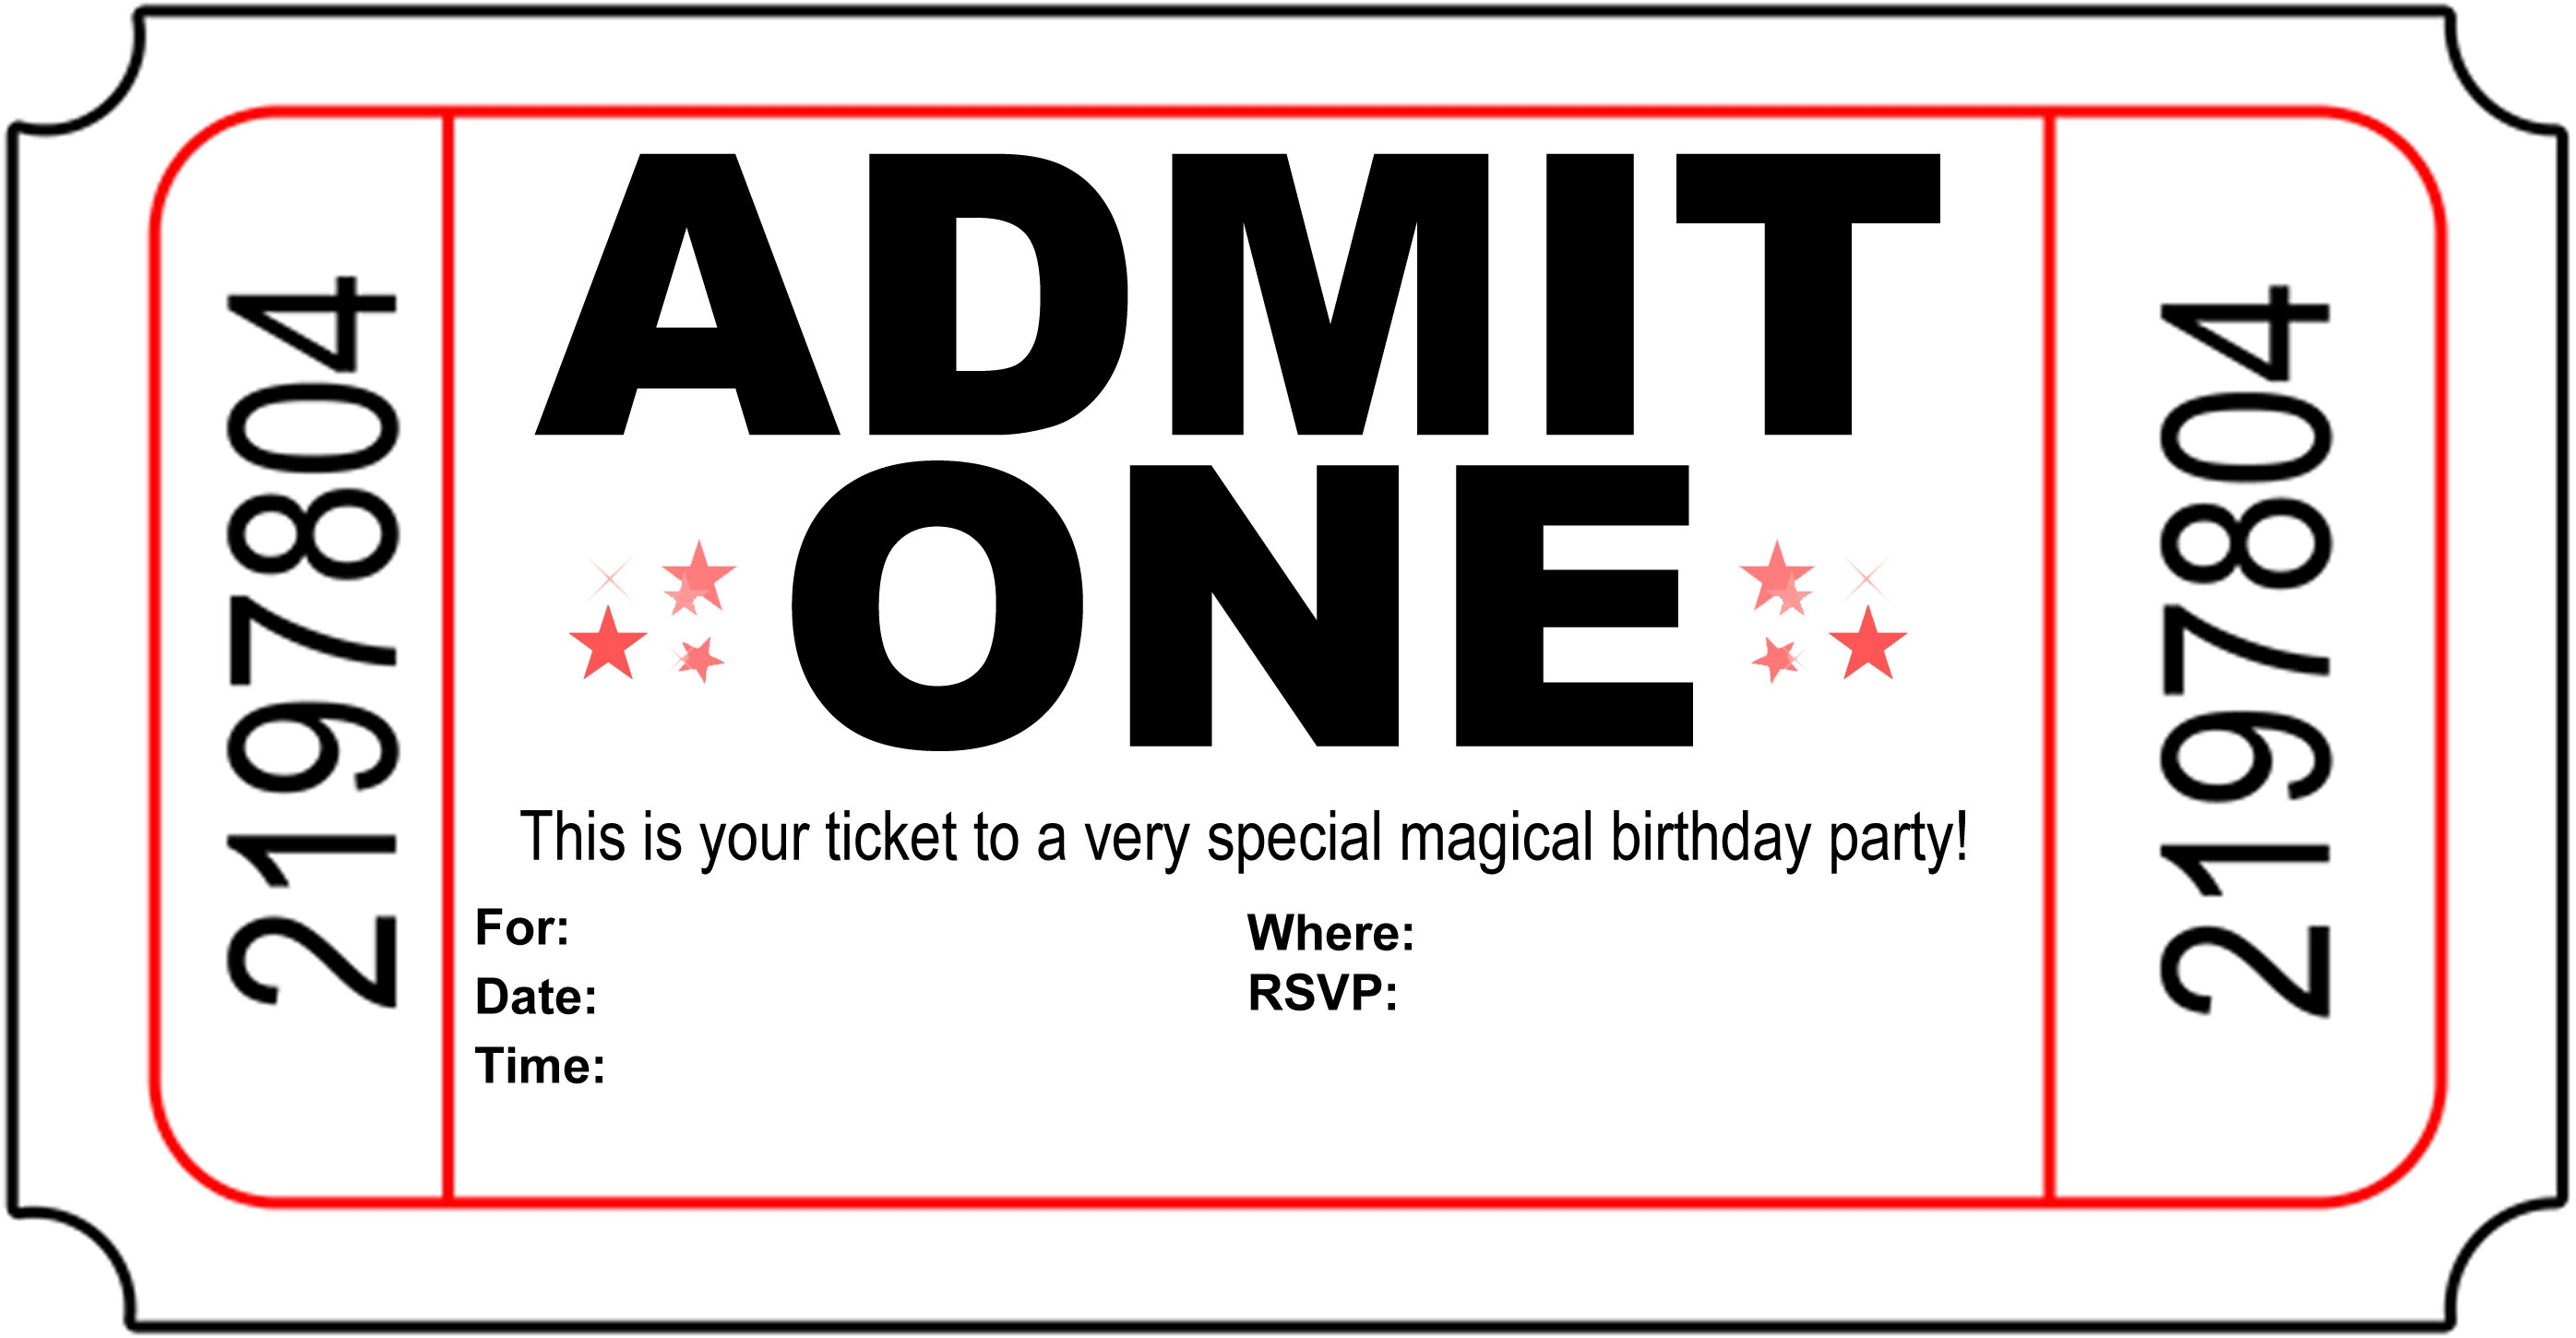 Ticket Party Invitation Template - Tutlin.psstech.co - Free Printable Ticket Invitations